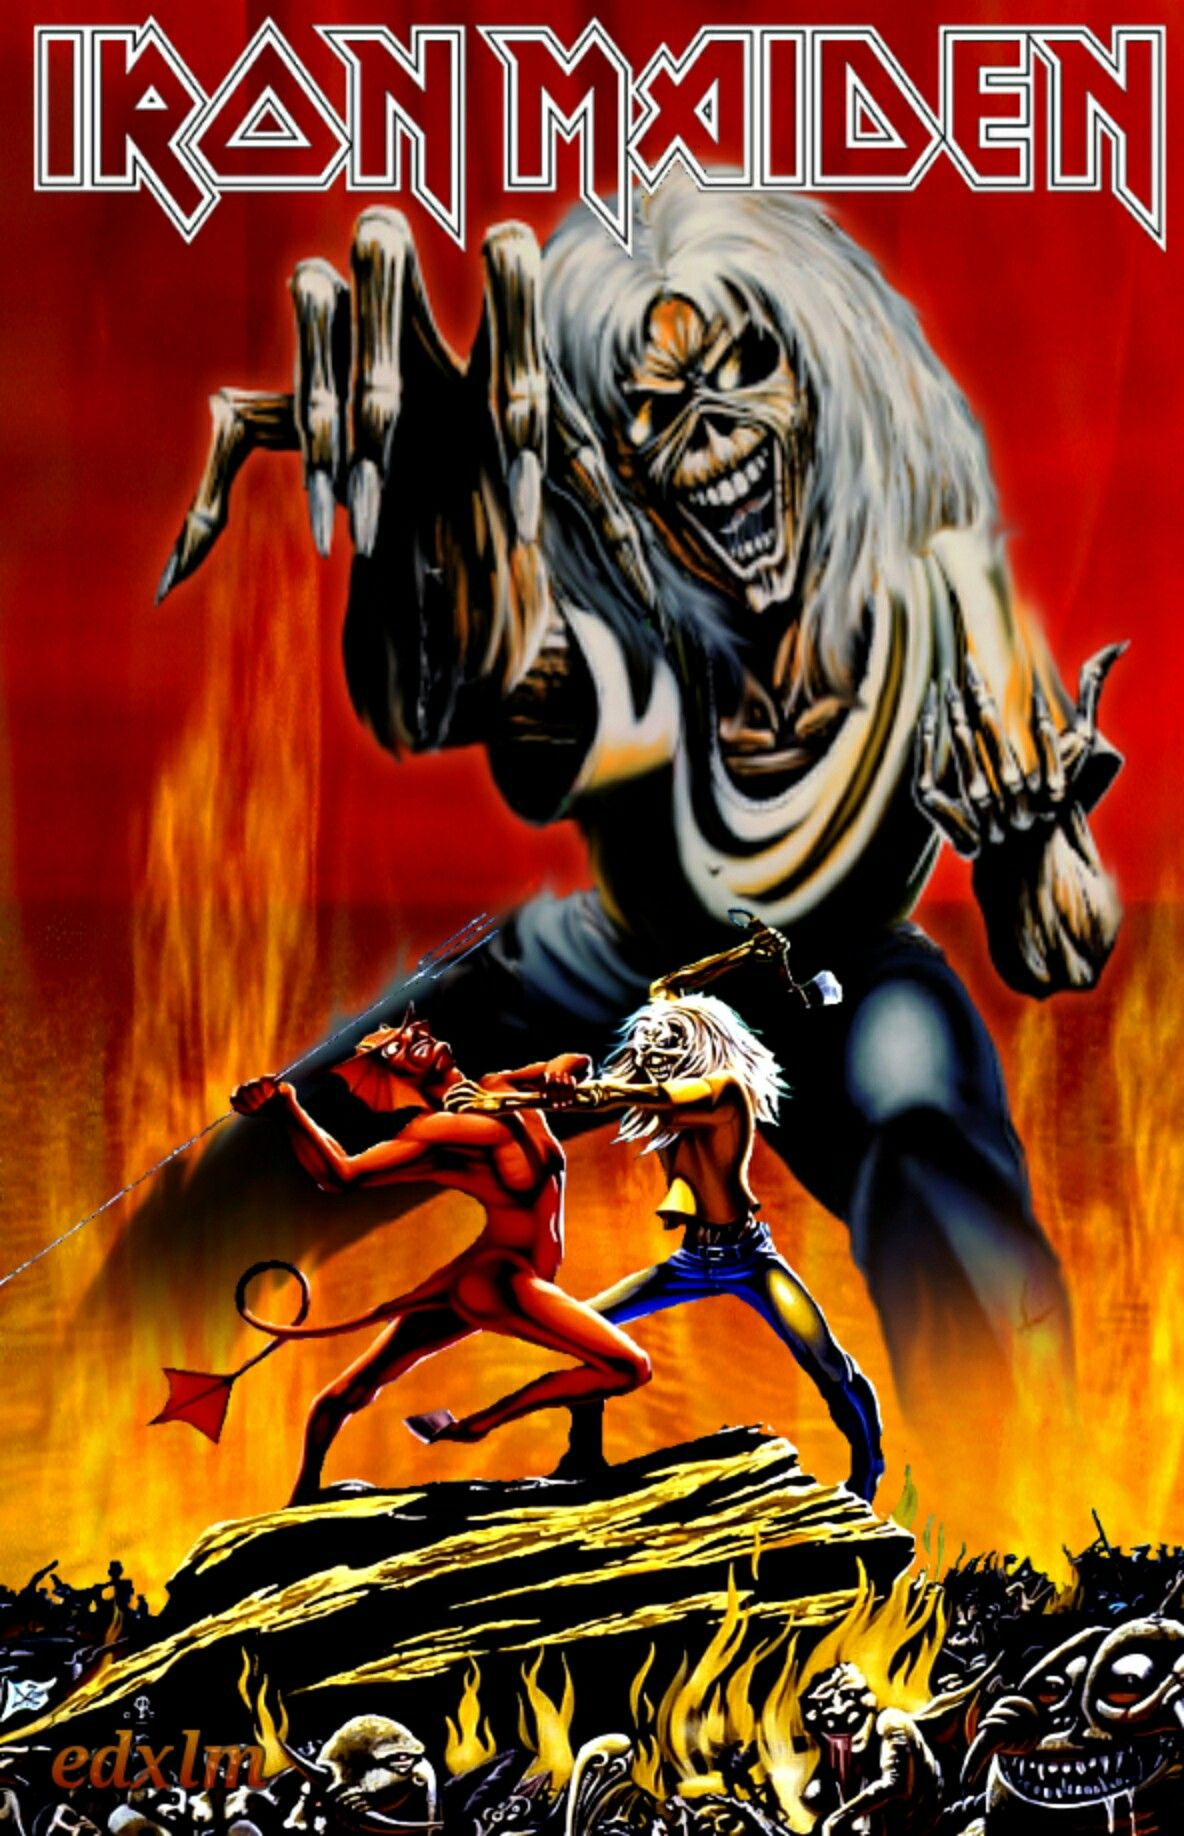 The number of the beast Iron maiden powerslave, Iron